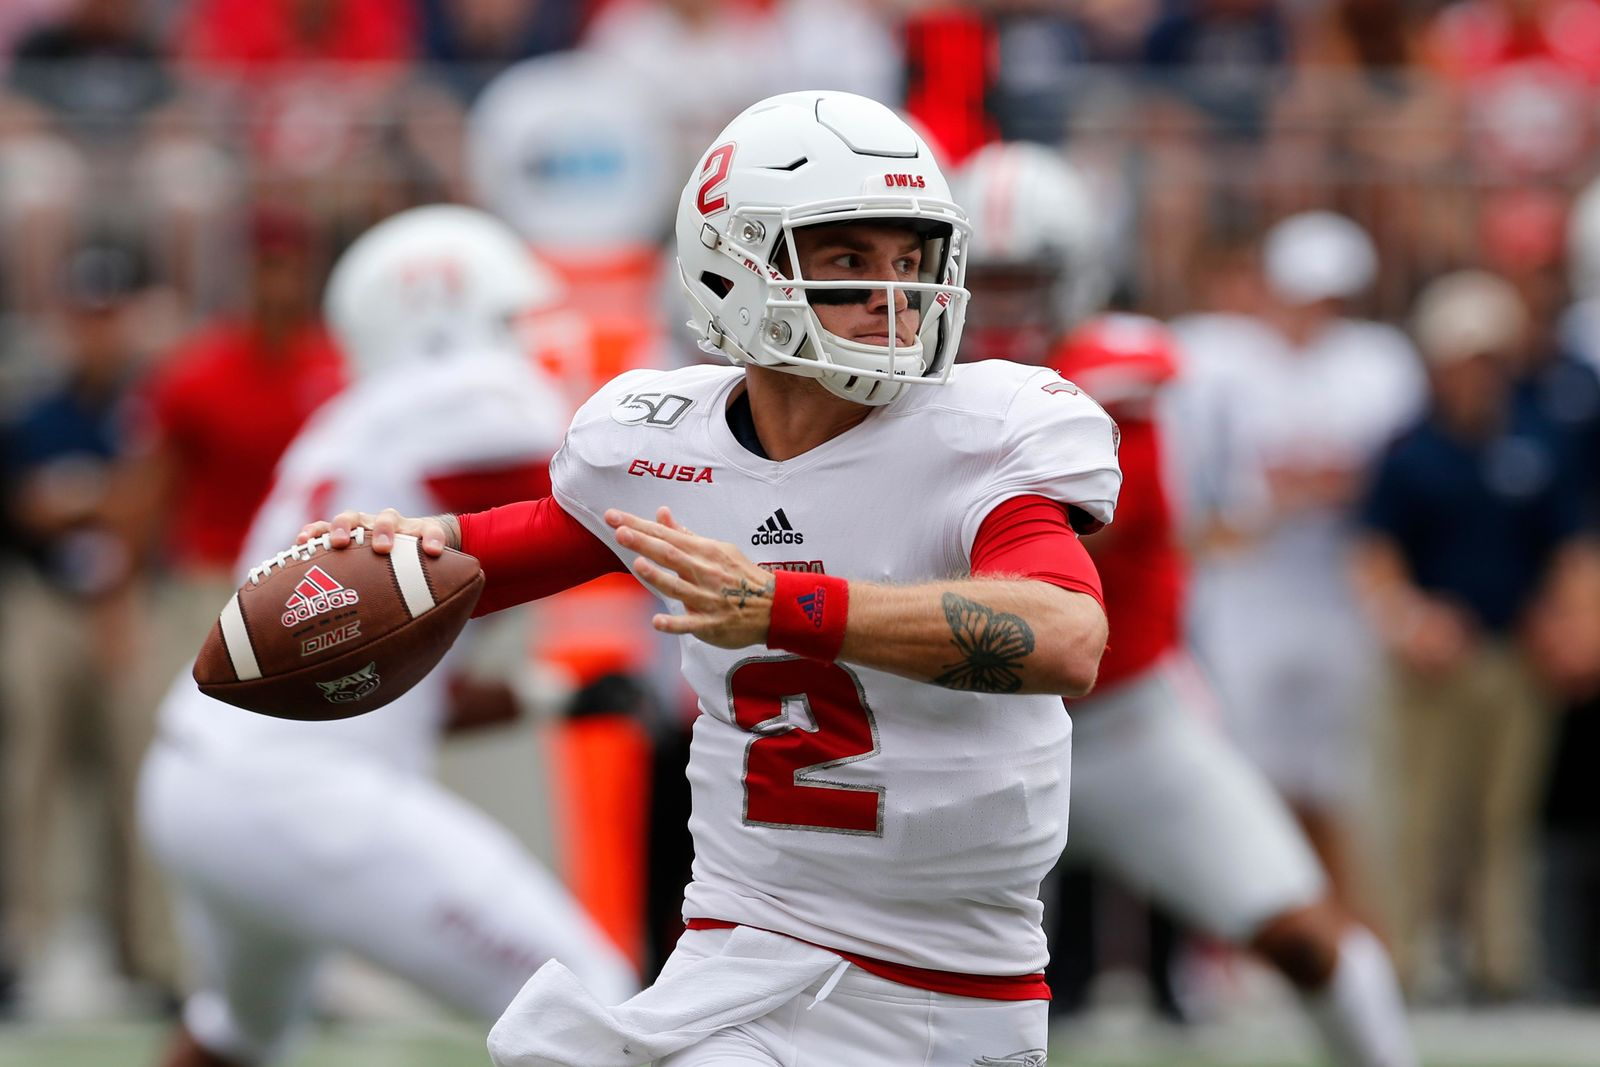 Florida Atlantic quarterback Chris Robison drops back to pass against Ohio State during the first half of an NCAA college football game Saturday, Aug. 31, 2019, in Columbus, Ohio. (AP Photo/Jay LaPrete)